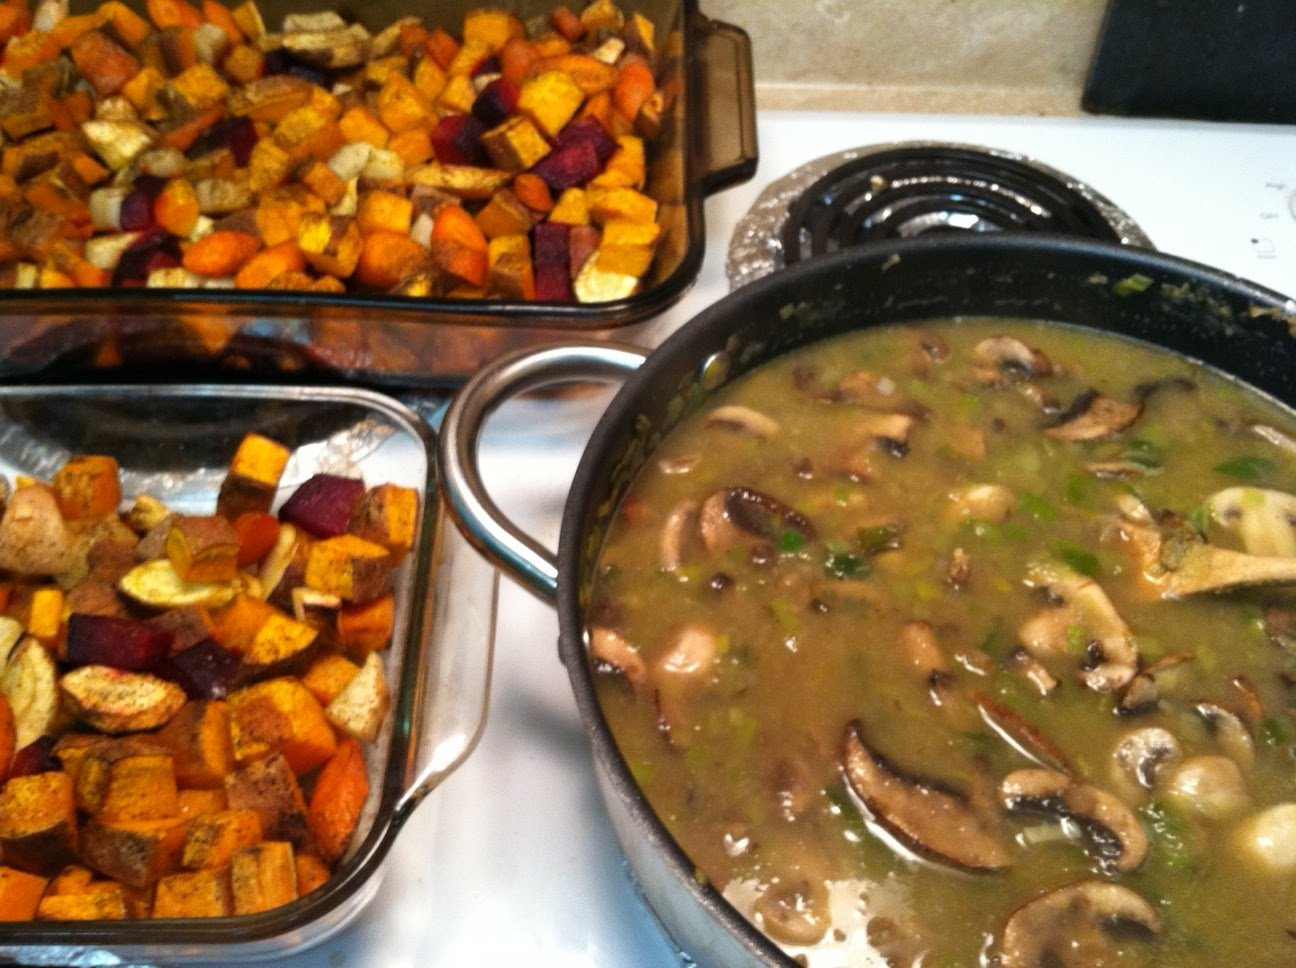 Below: Roasted vegetables and mushroom gravy